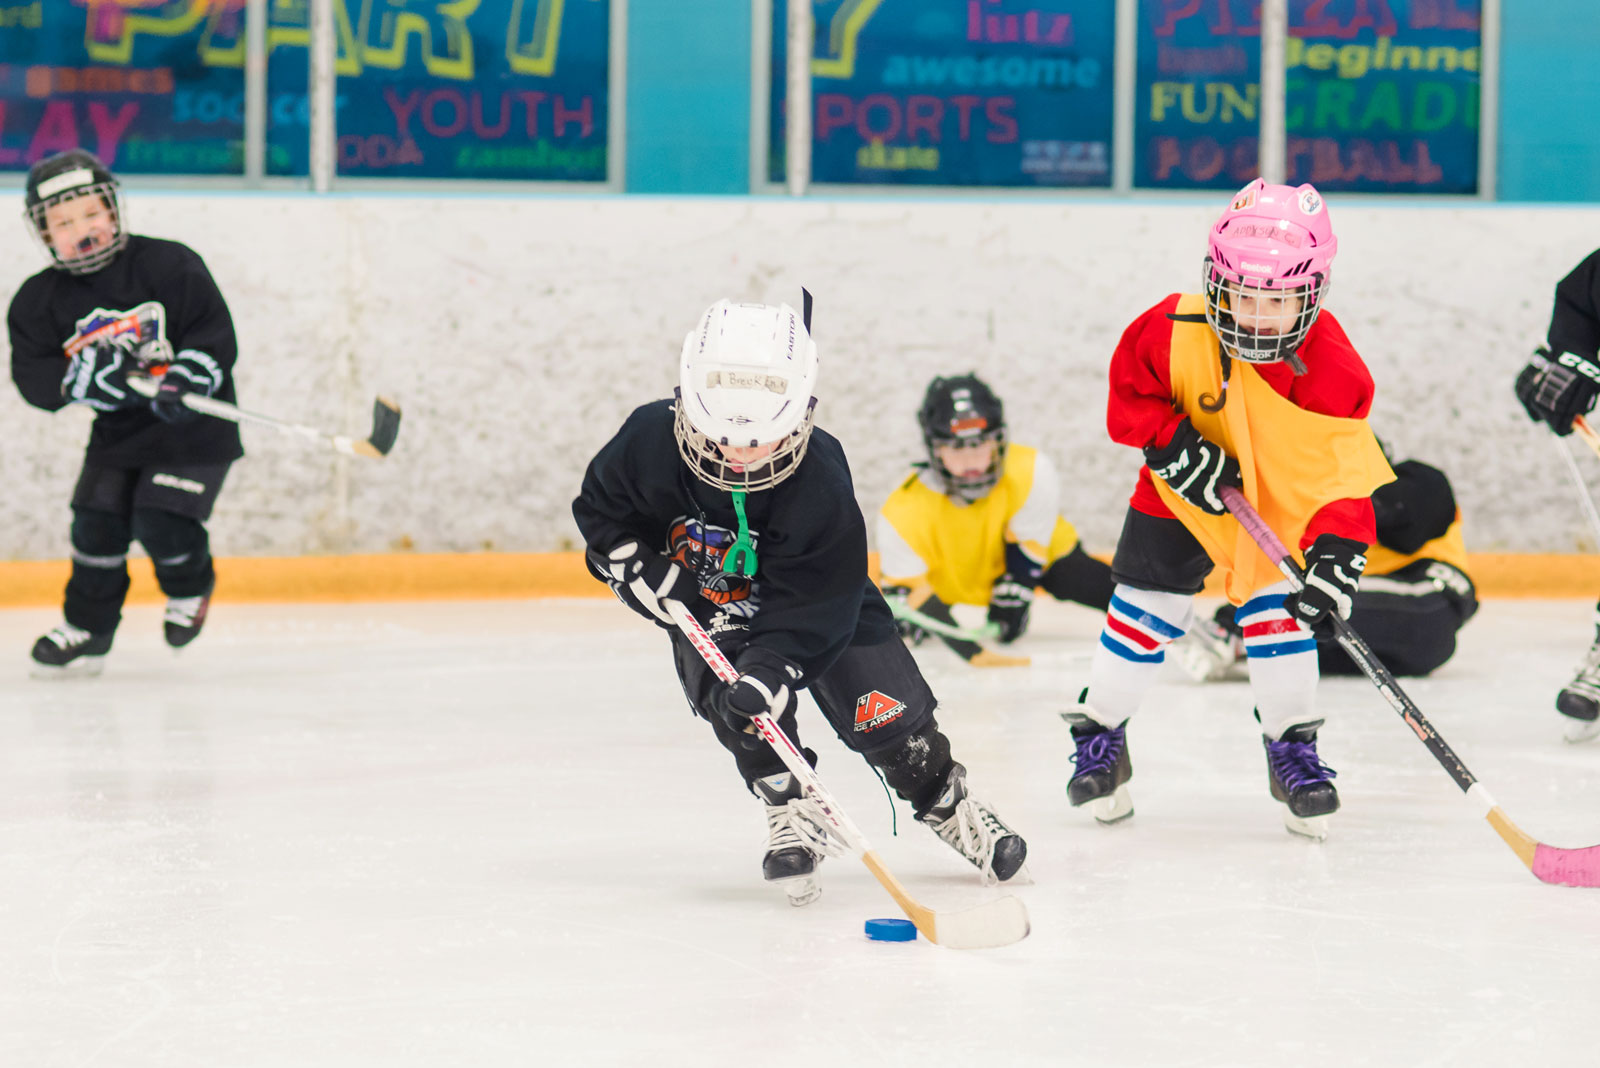 Knoxville Youth Hockey mini mites practice at CoolSports in Farragut TN